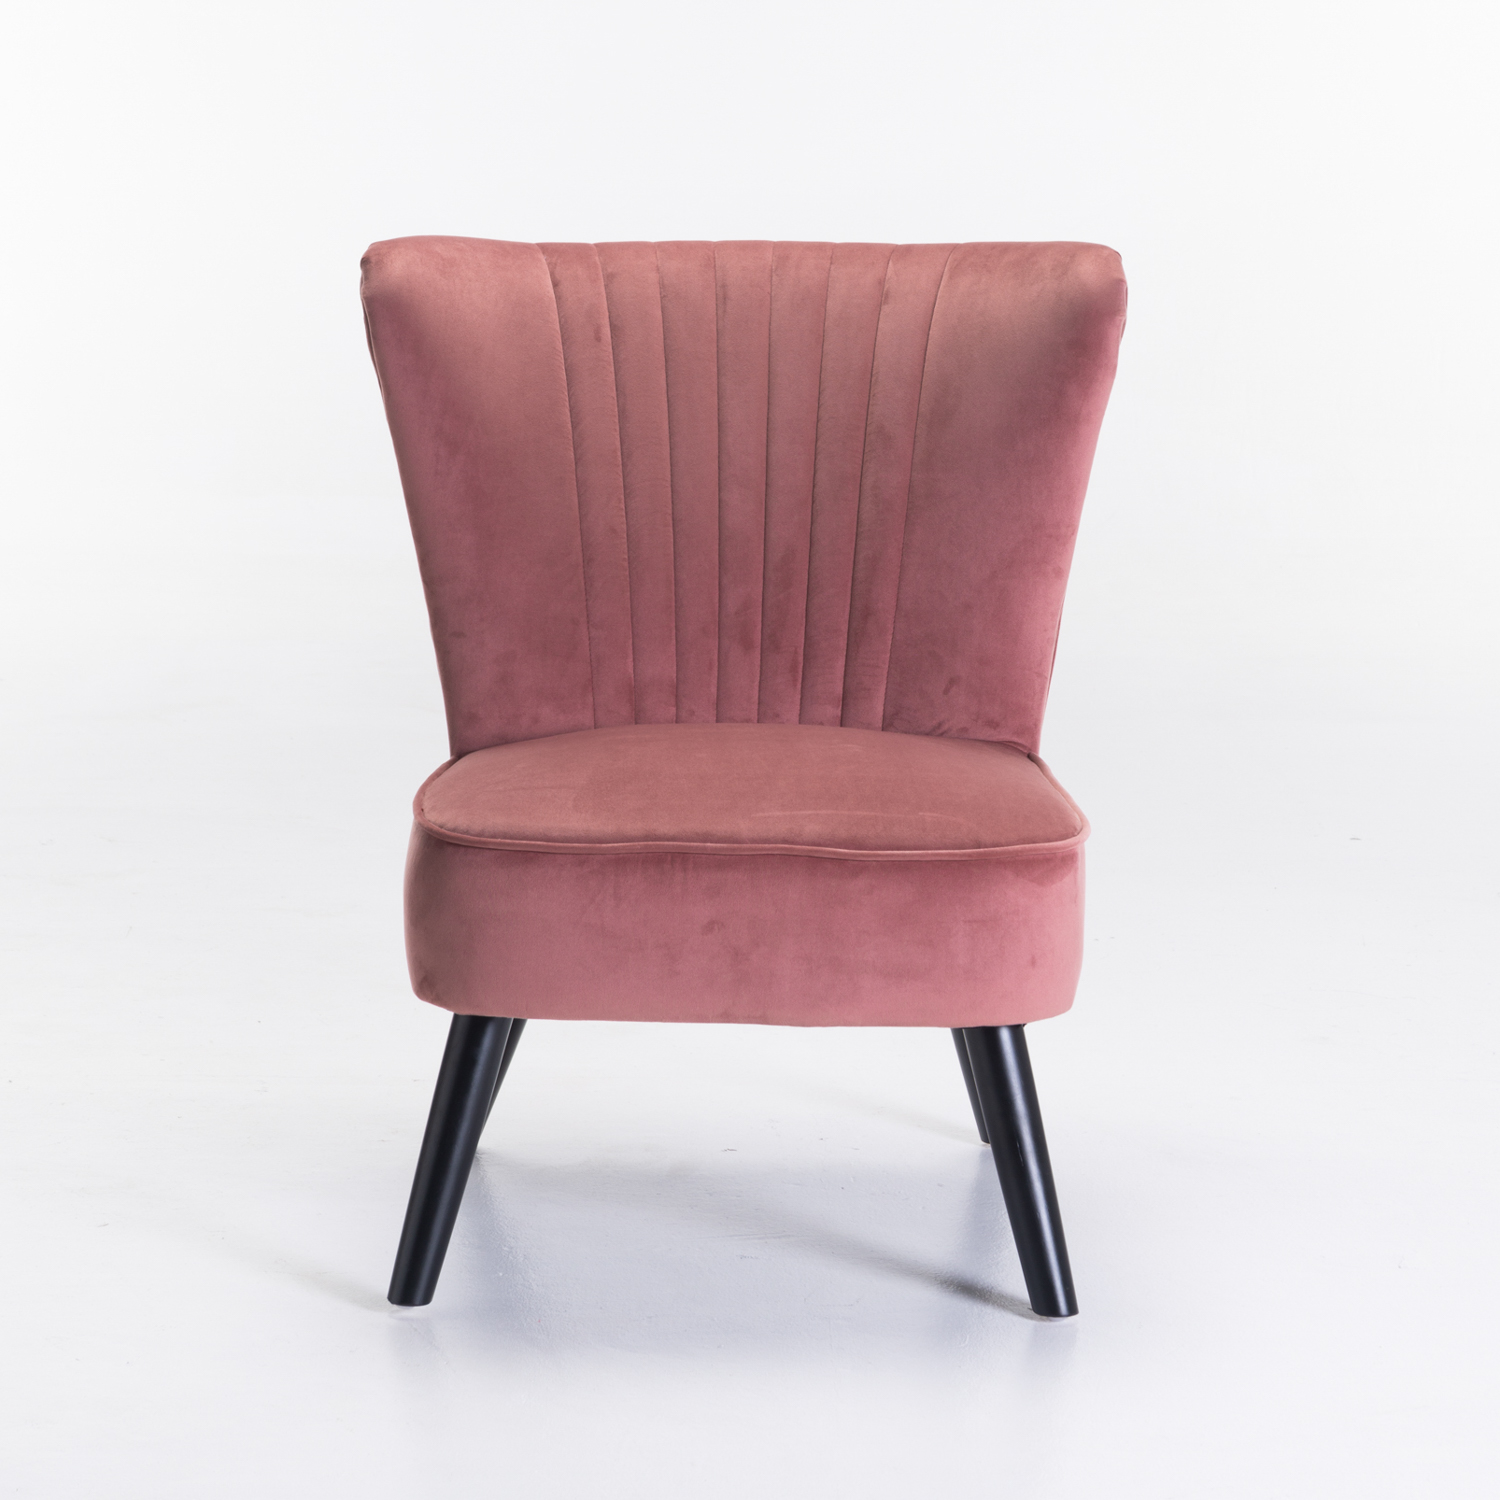 SHELL VELVET CHAIR - BLUSH